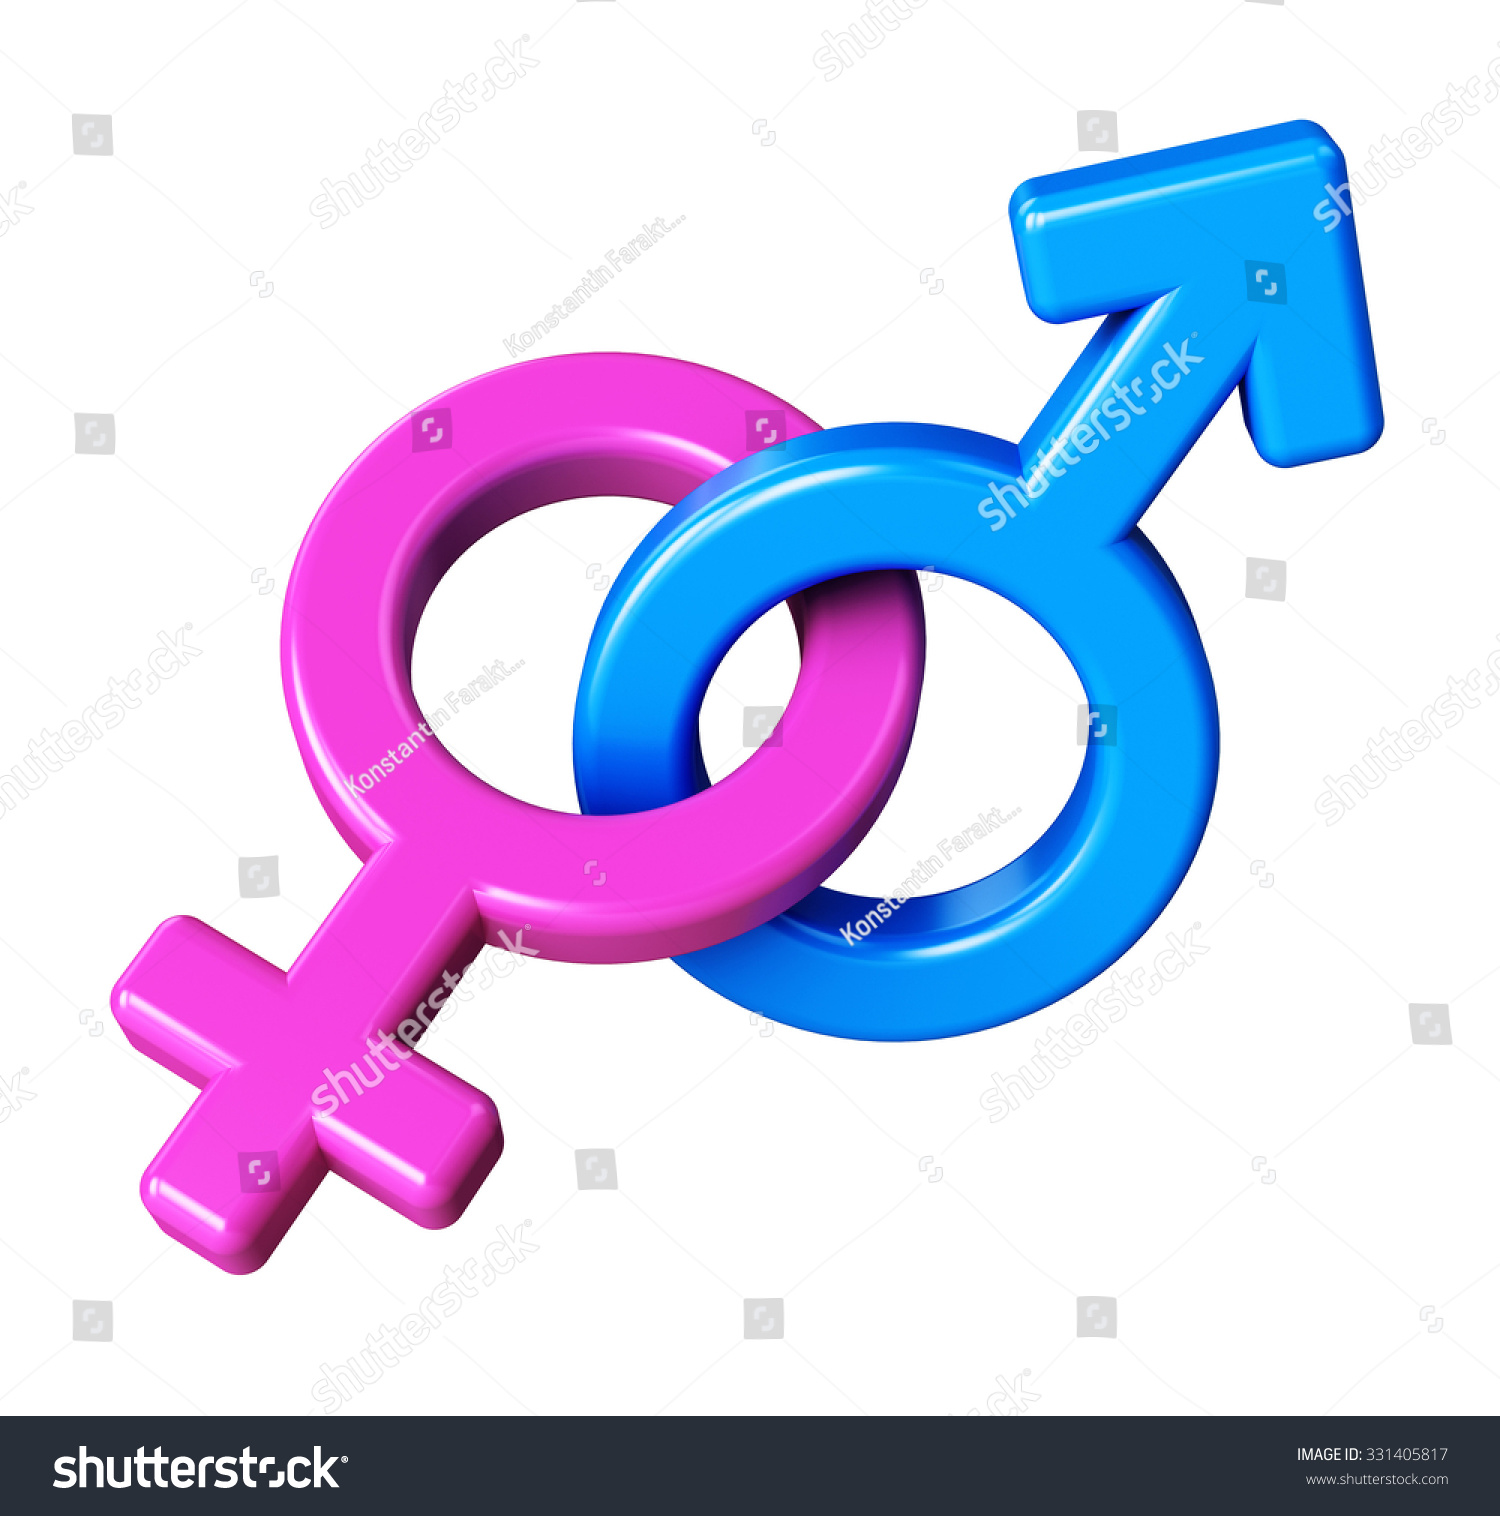 Royalty Free Stock Illustration Of Male Female Symbols Mars Venus